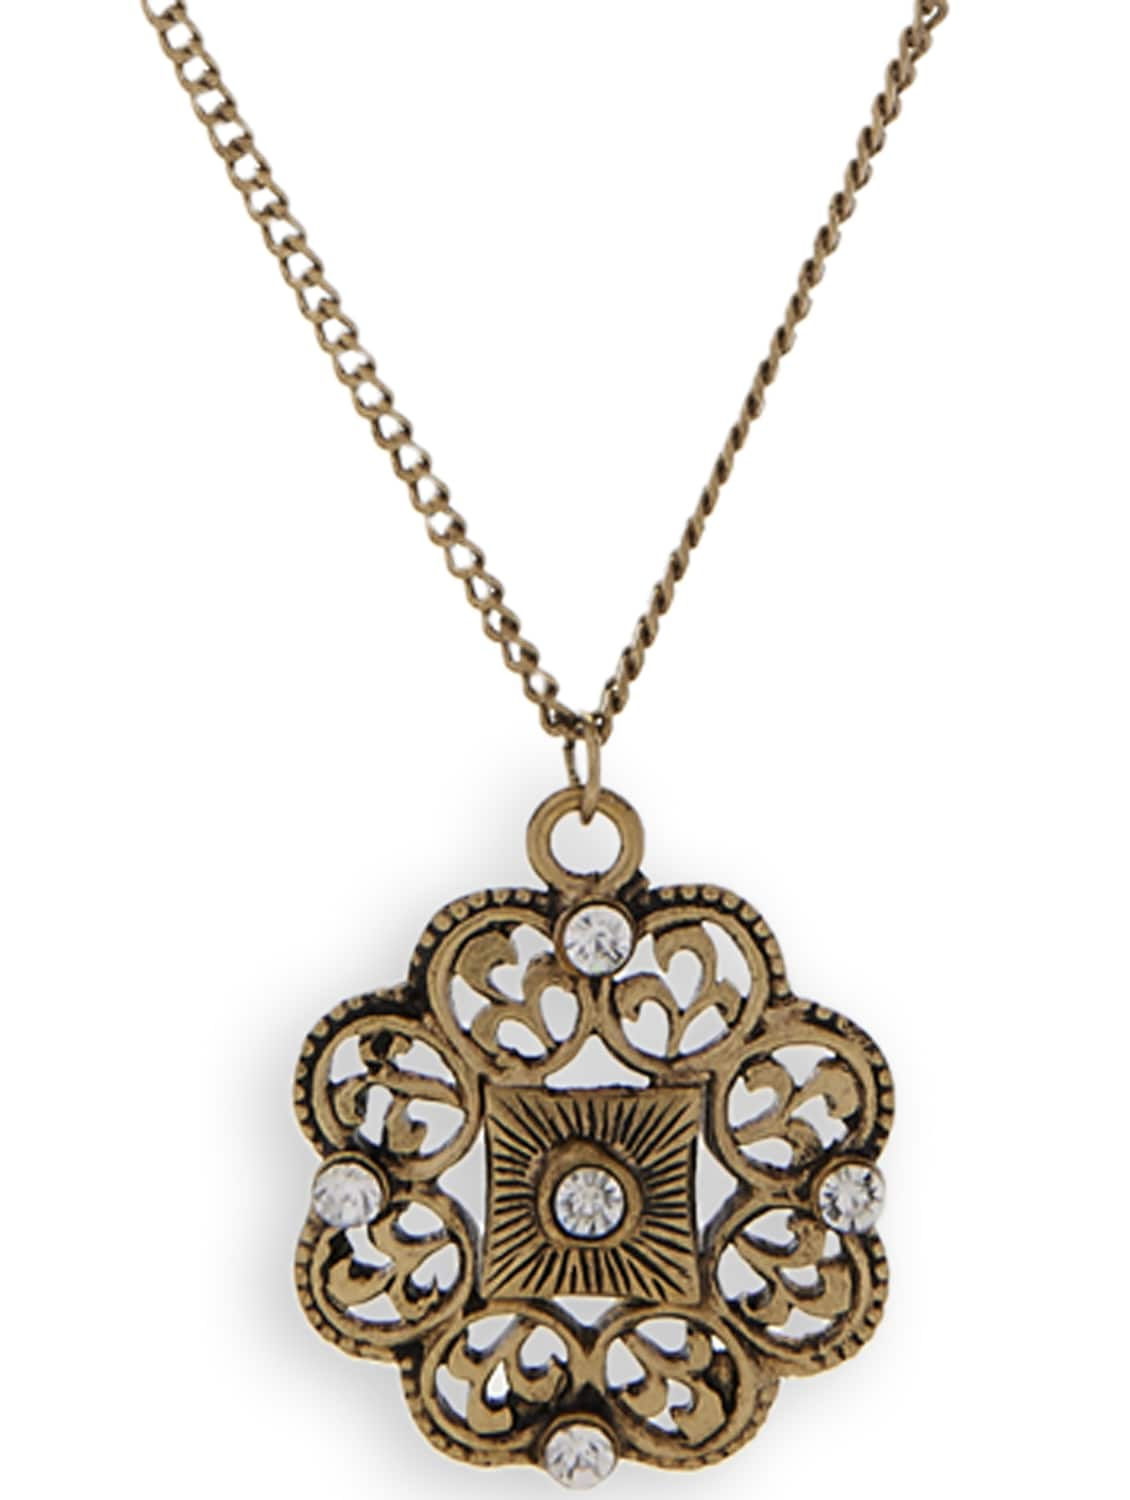 Central Beauty- Antique Gold Pendant In Chain - Trinketbag